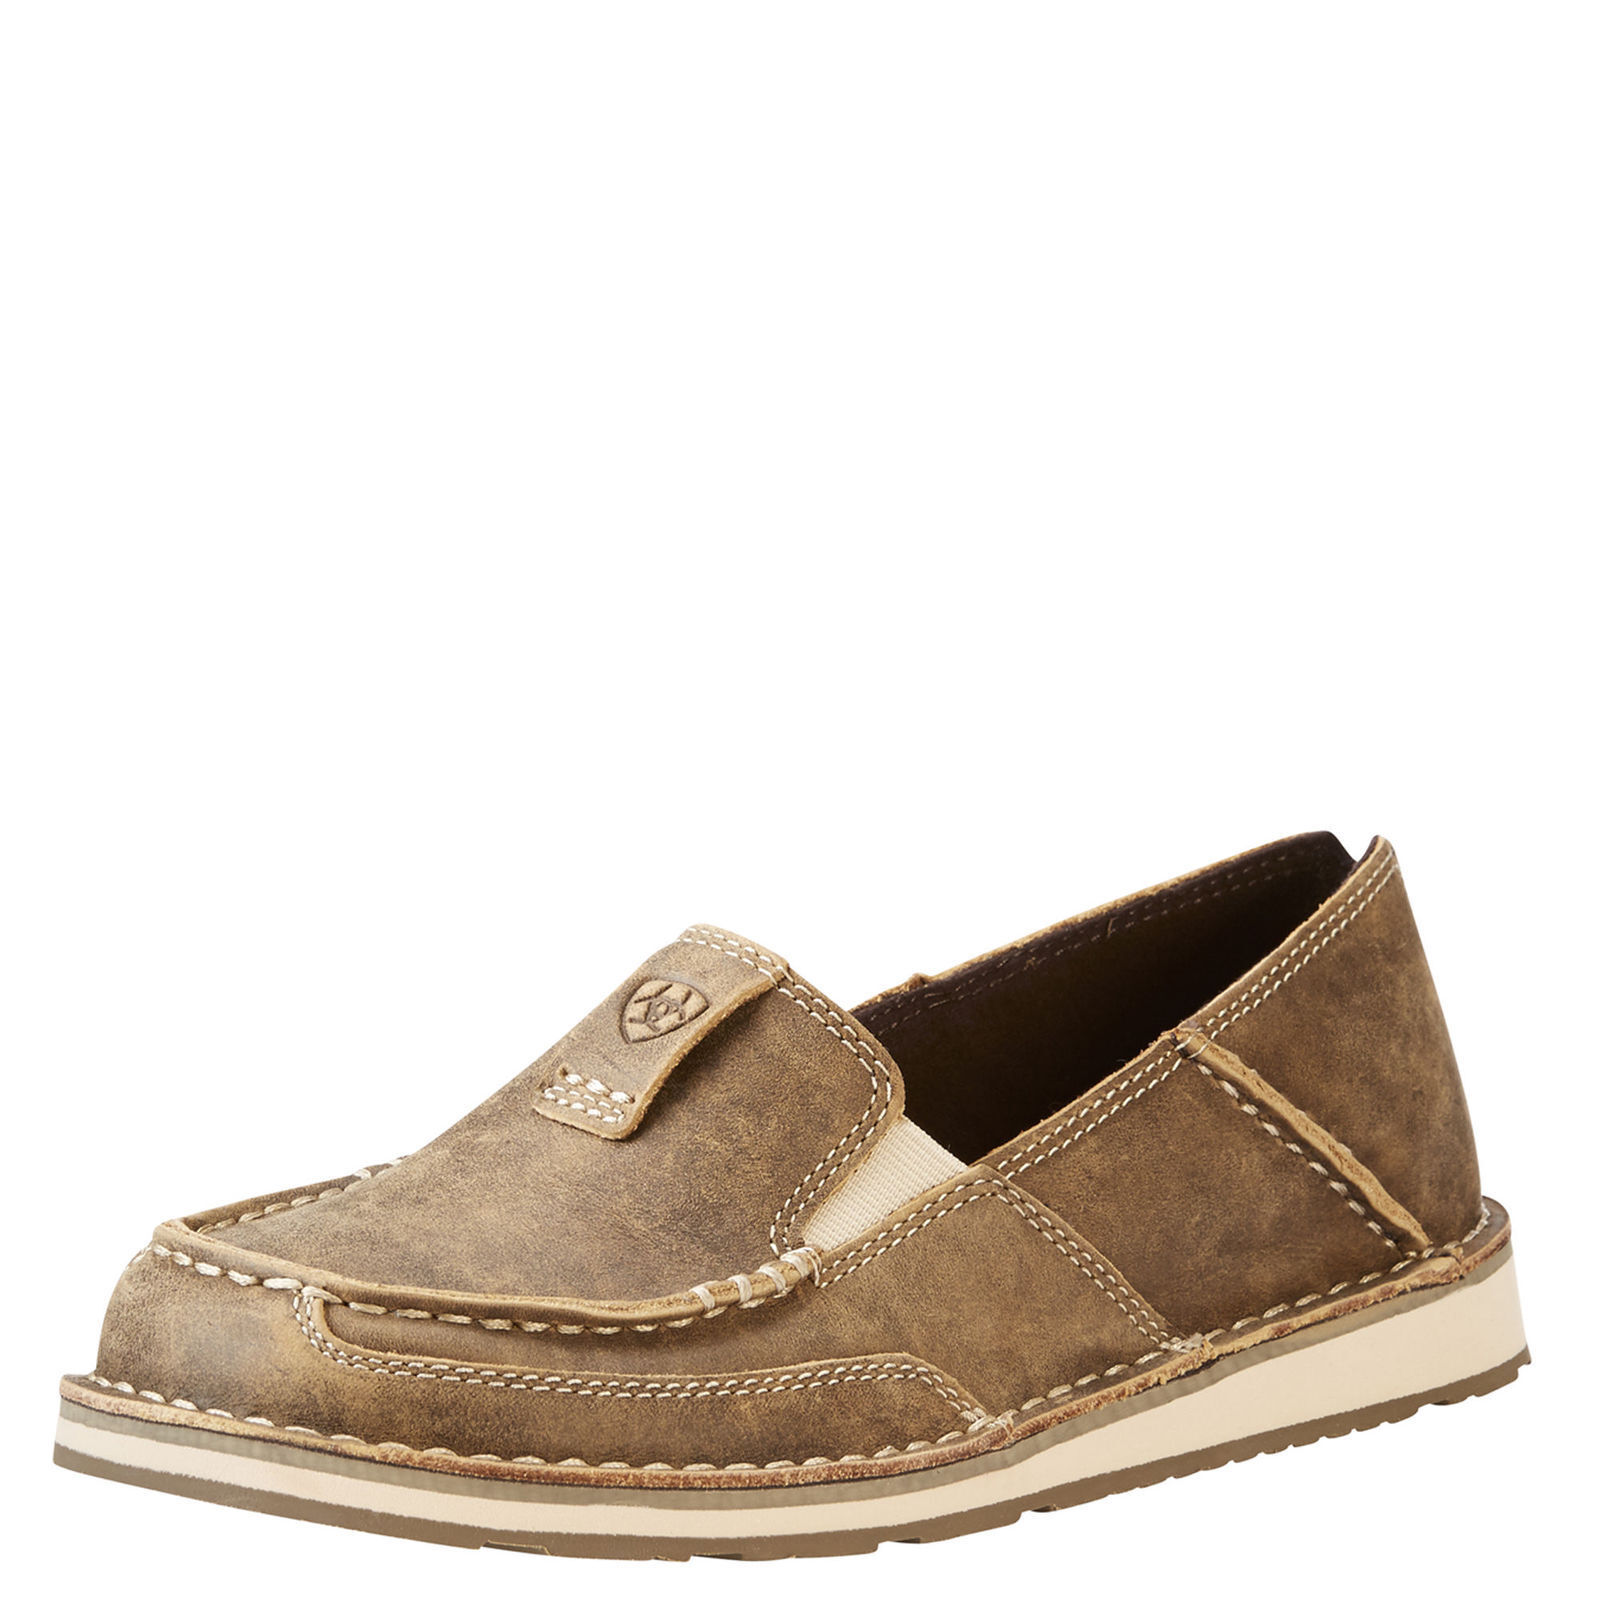 Ariat 10023008 Cruiser Brown Bomber Western Casual Moc Toe Slip On shoes Loafer